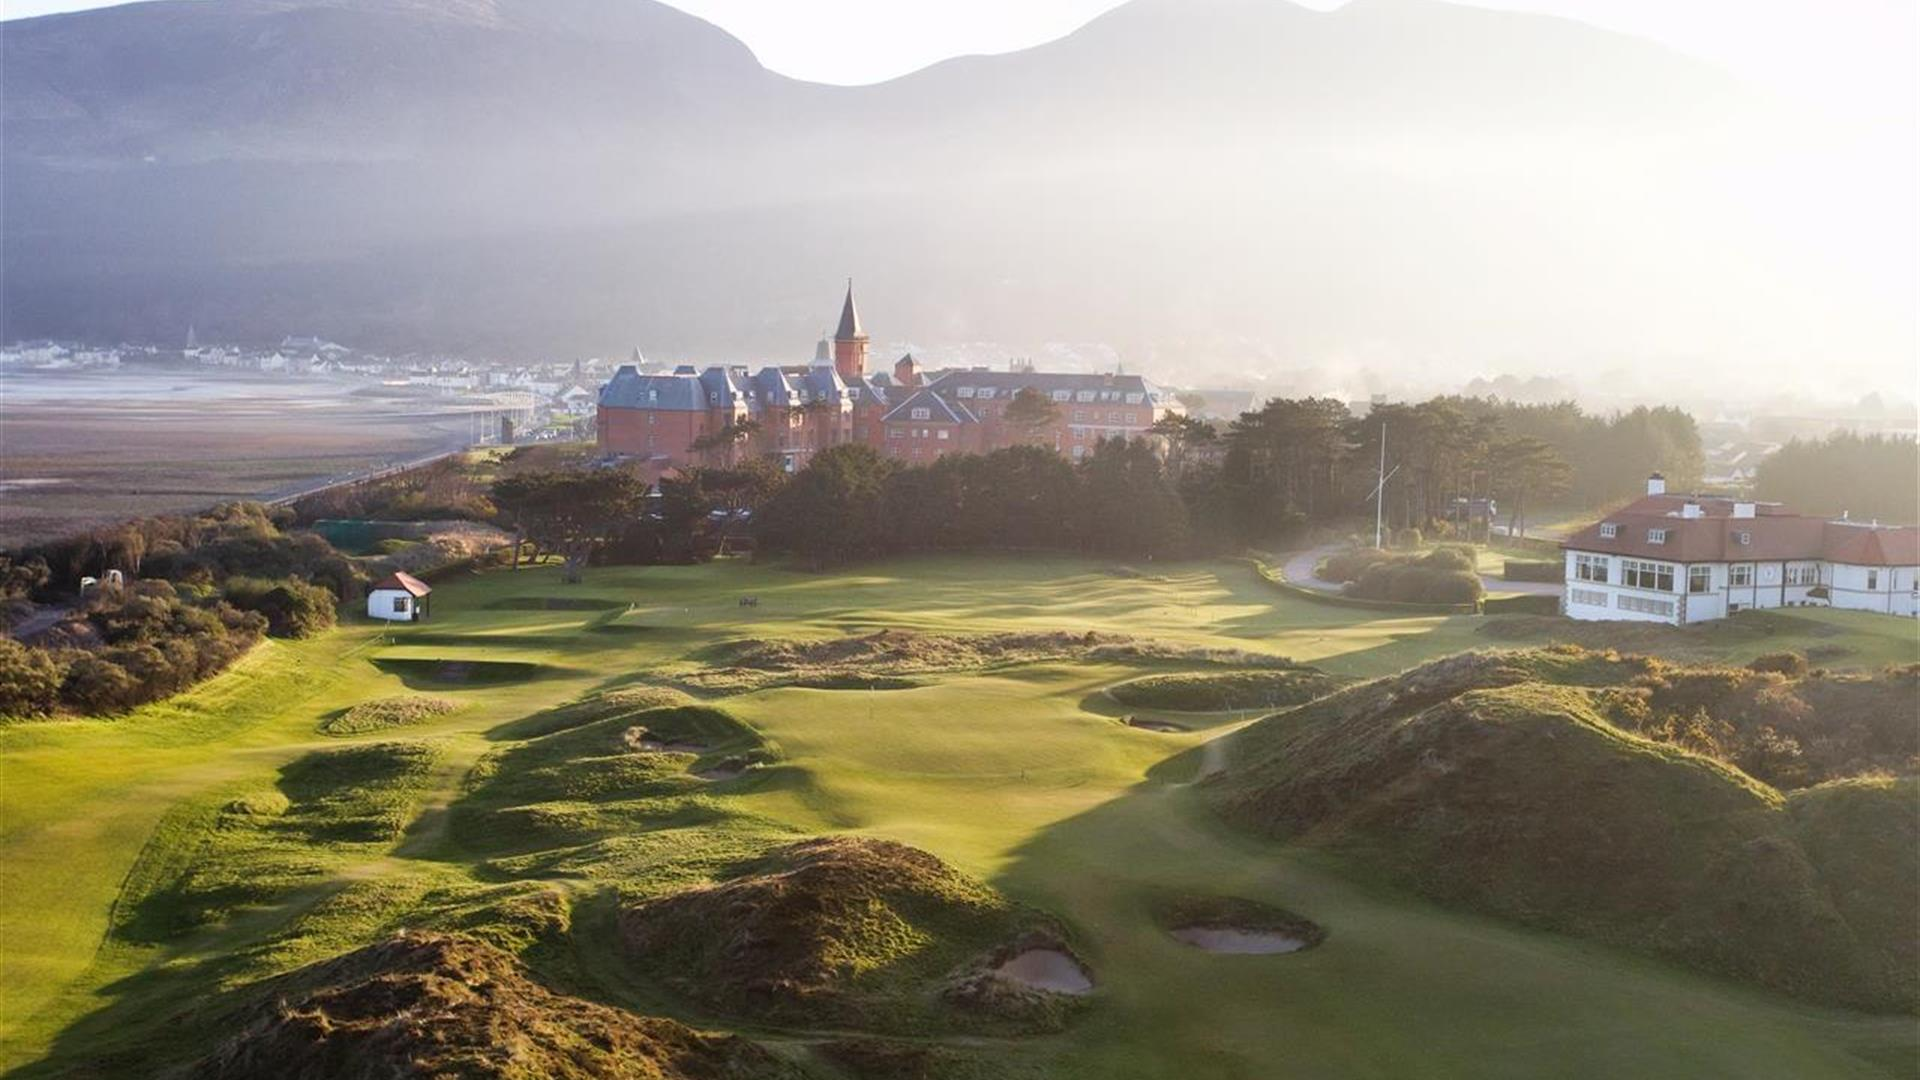 Image showing Royal County Down Golf Course and Slieve Donard Resort and Spa, with Slieve Donard mountain in the background.